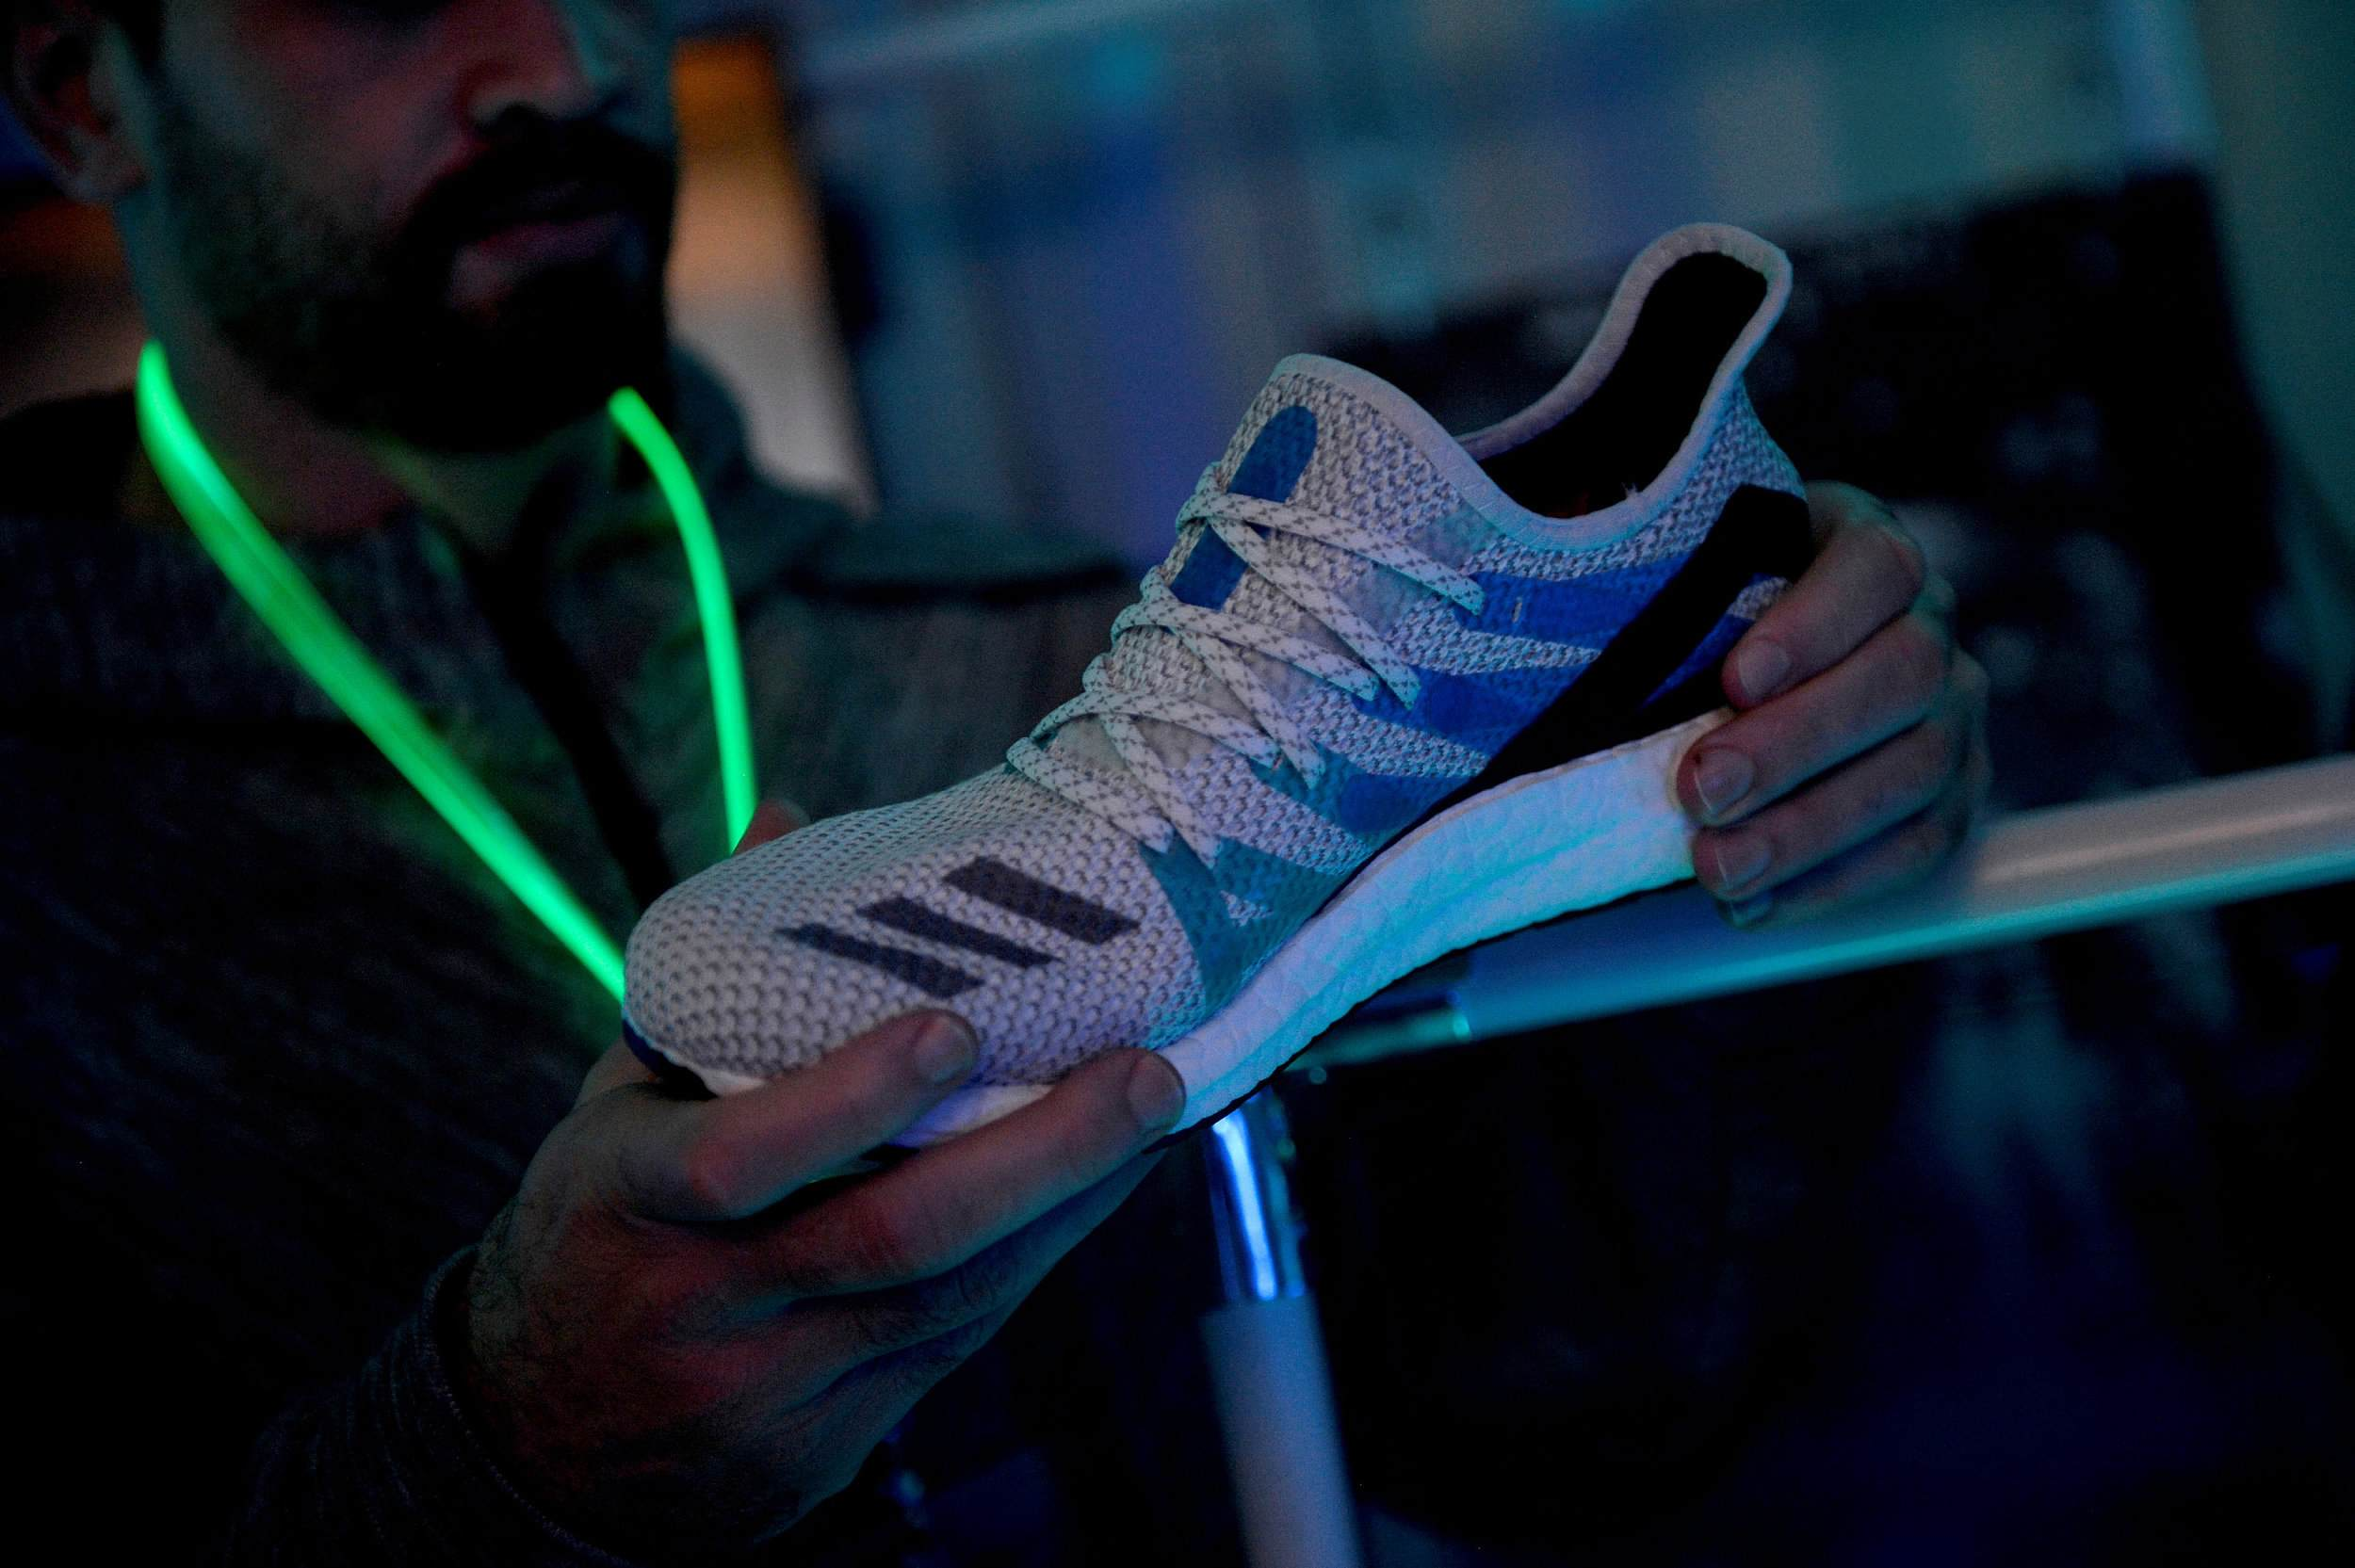 72eec2c5261 Under threat: Could robots replace human workers at Nike and Adidas ...